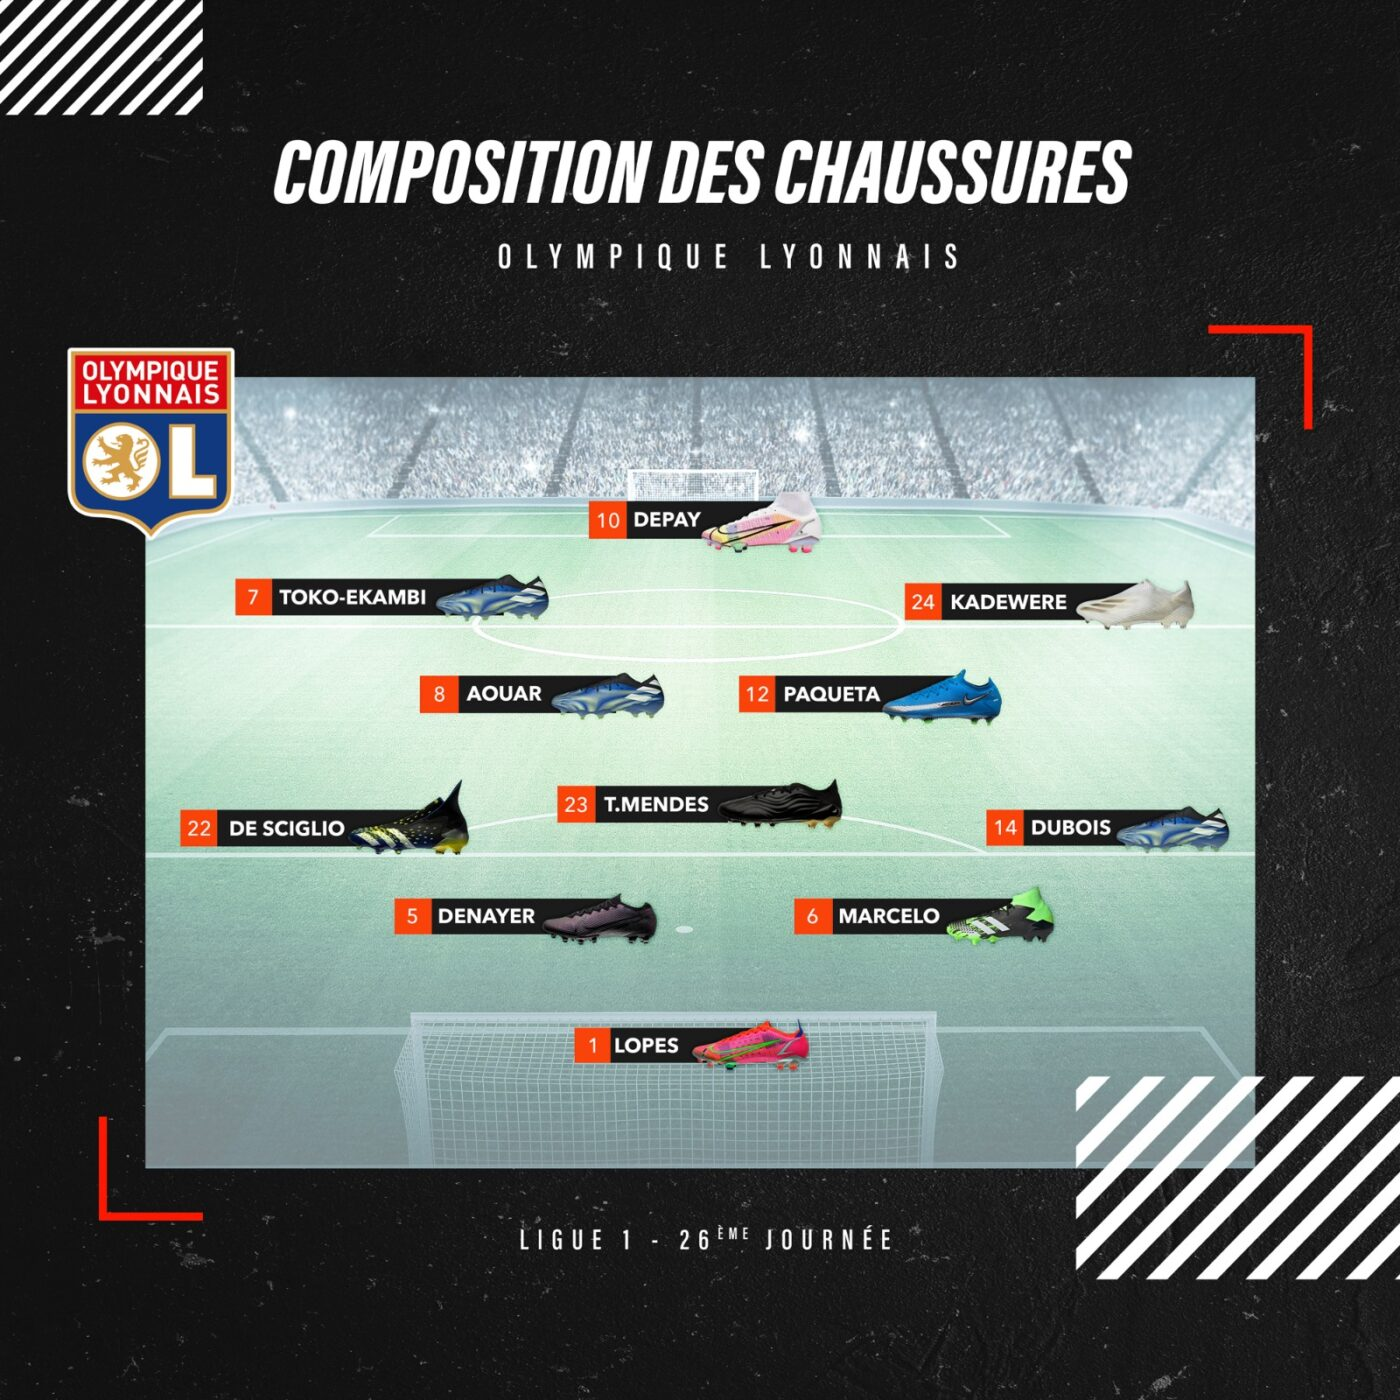 compos-psg-ol-chaussures-2